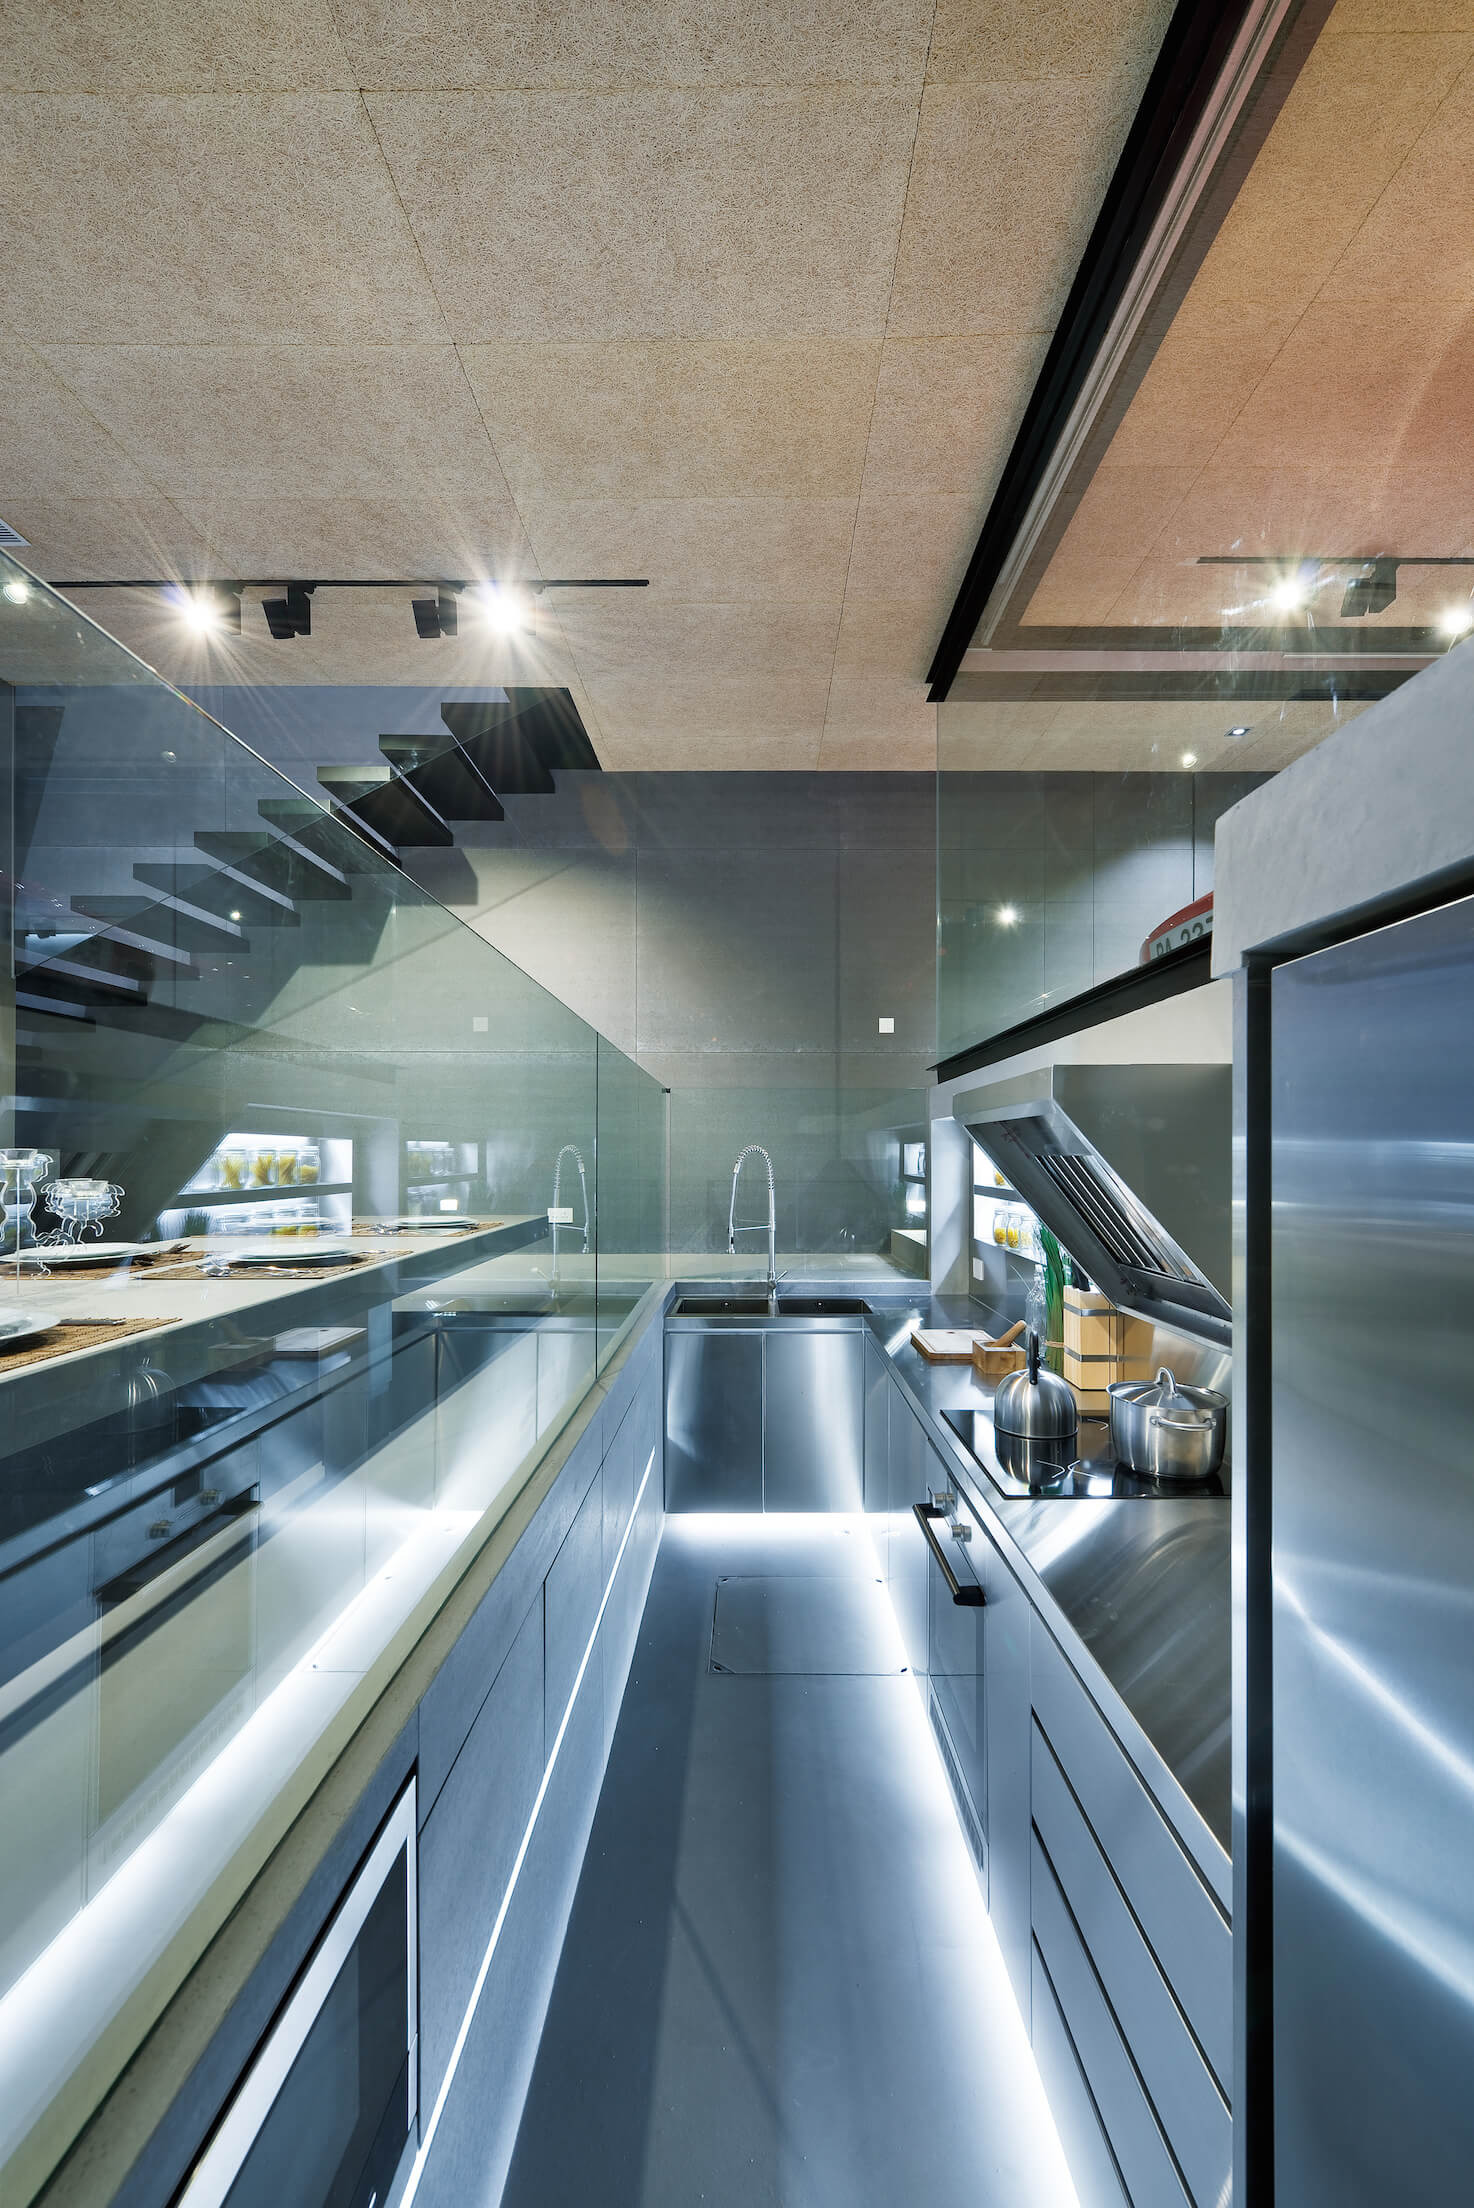 Close view of ultra-modern kitchen, utilizing novel sunken space, awash in brushed aluminum material.